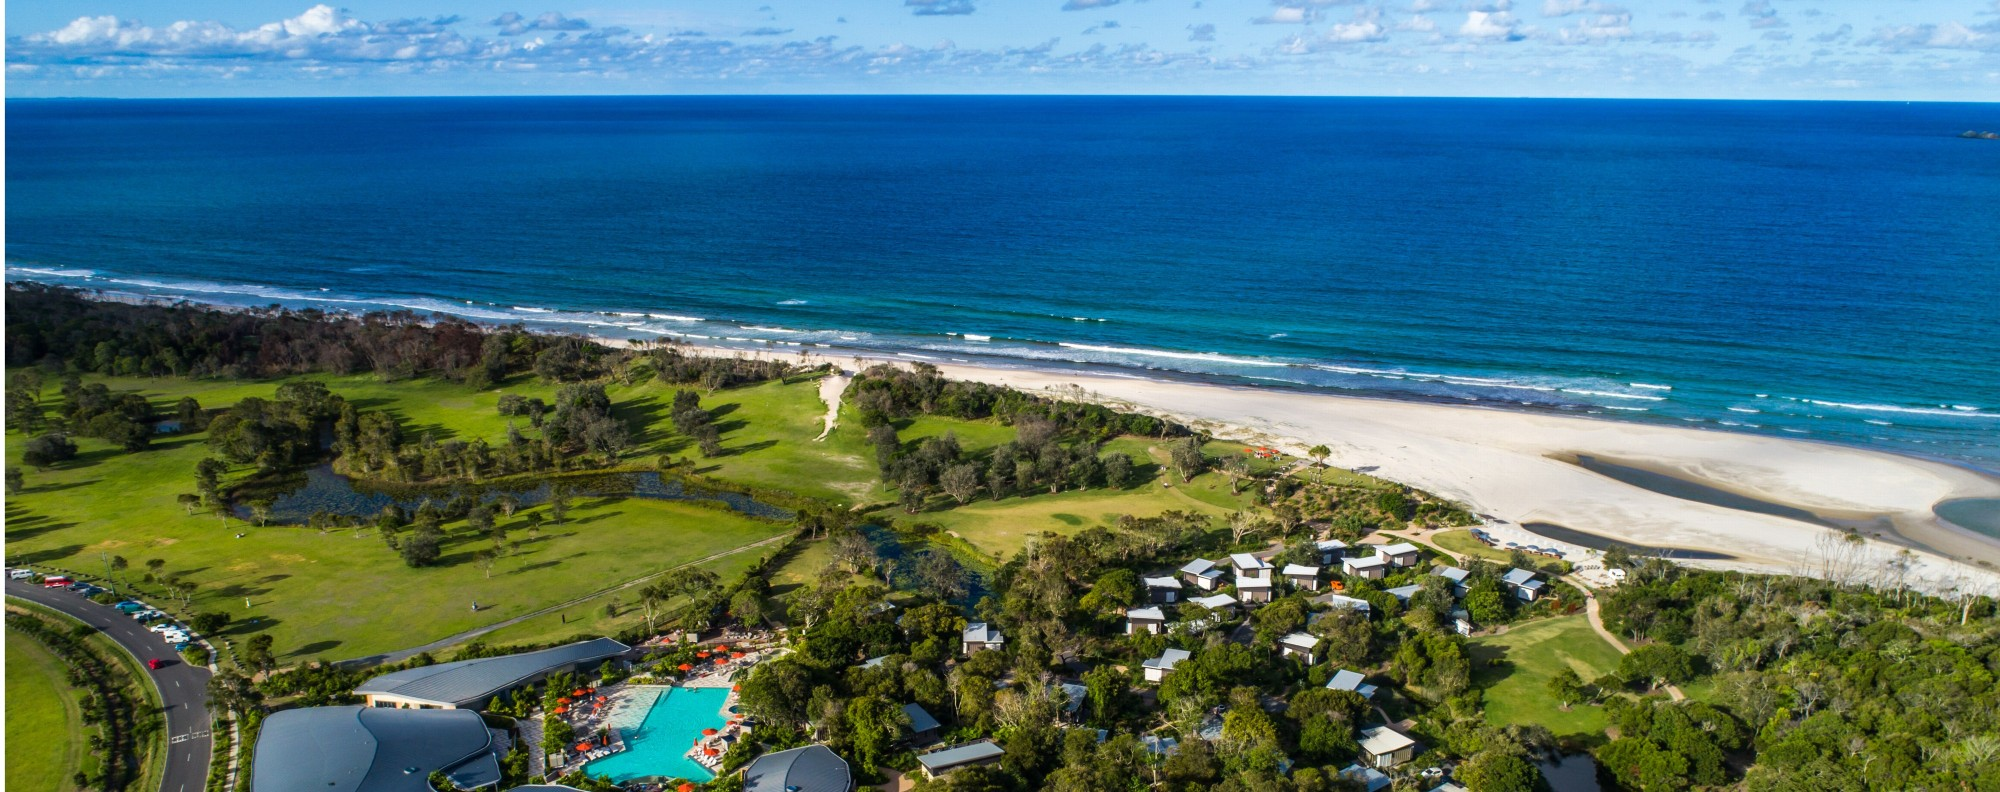 Byron Bay, in New South Wales, Australia. Picture: Elements